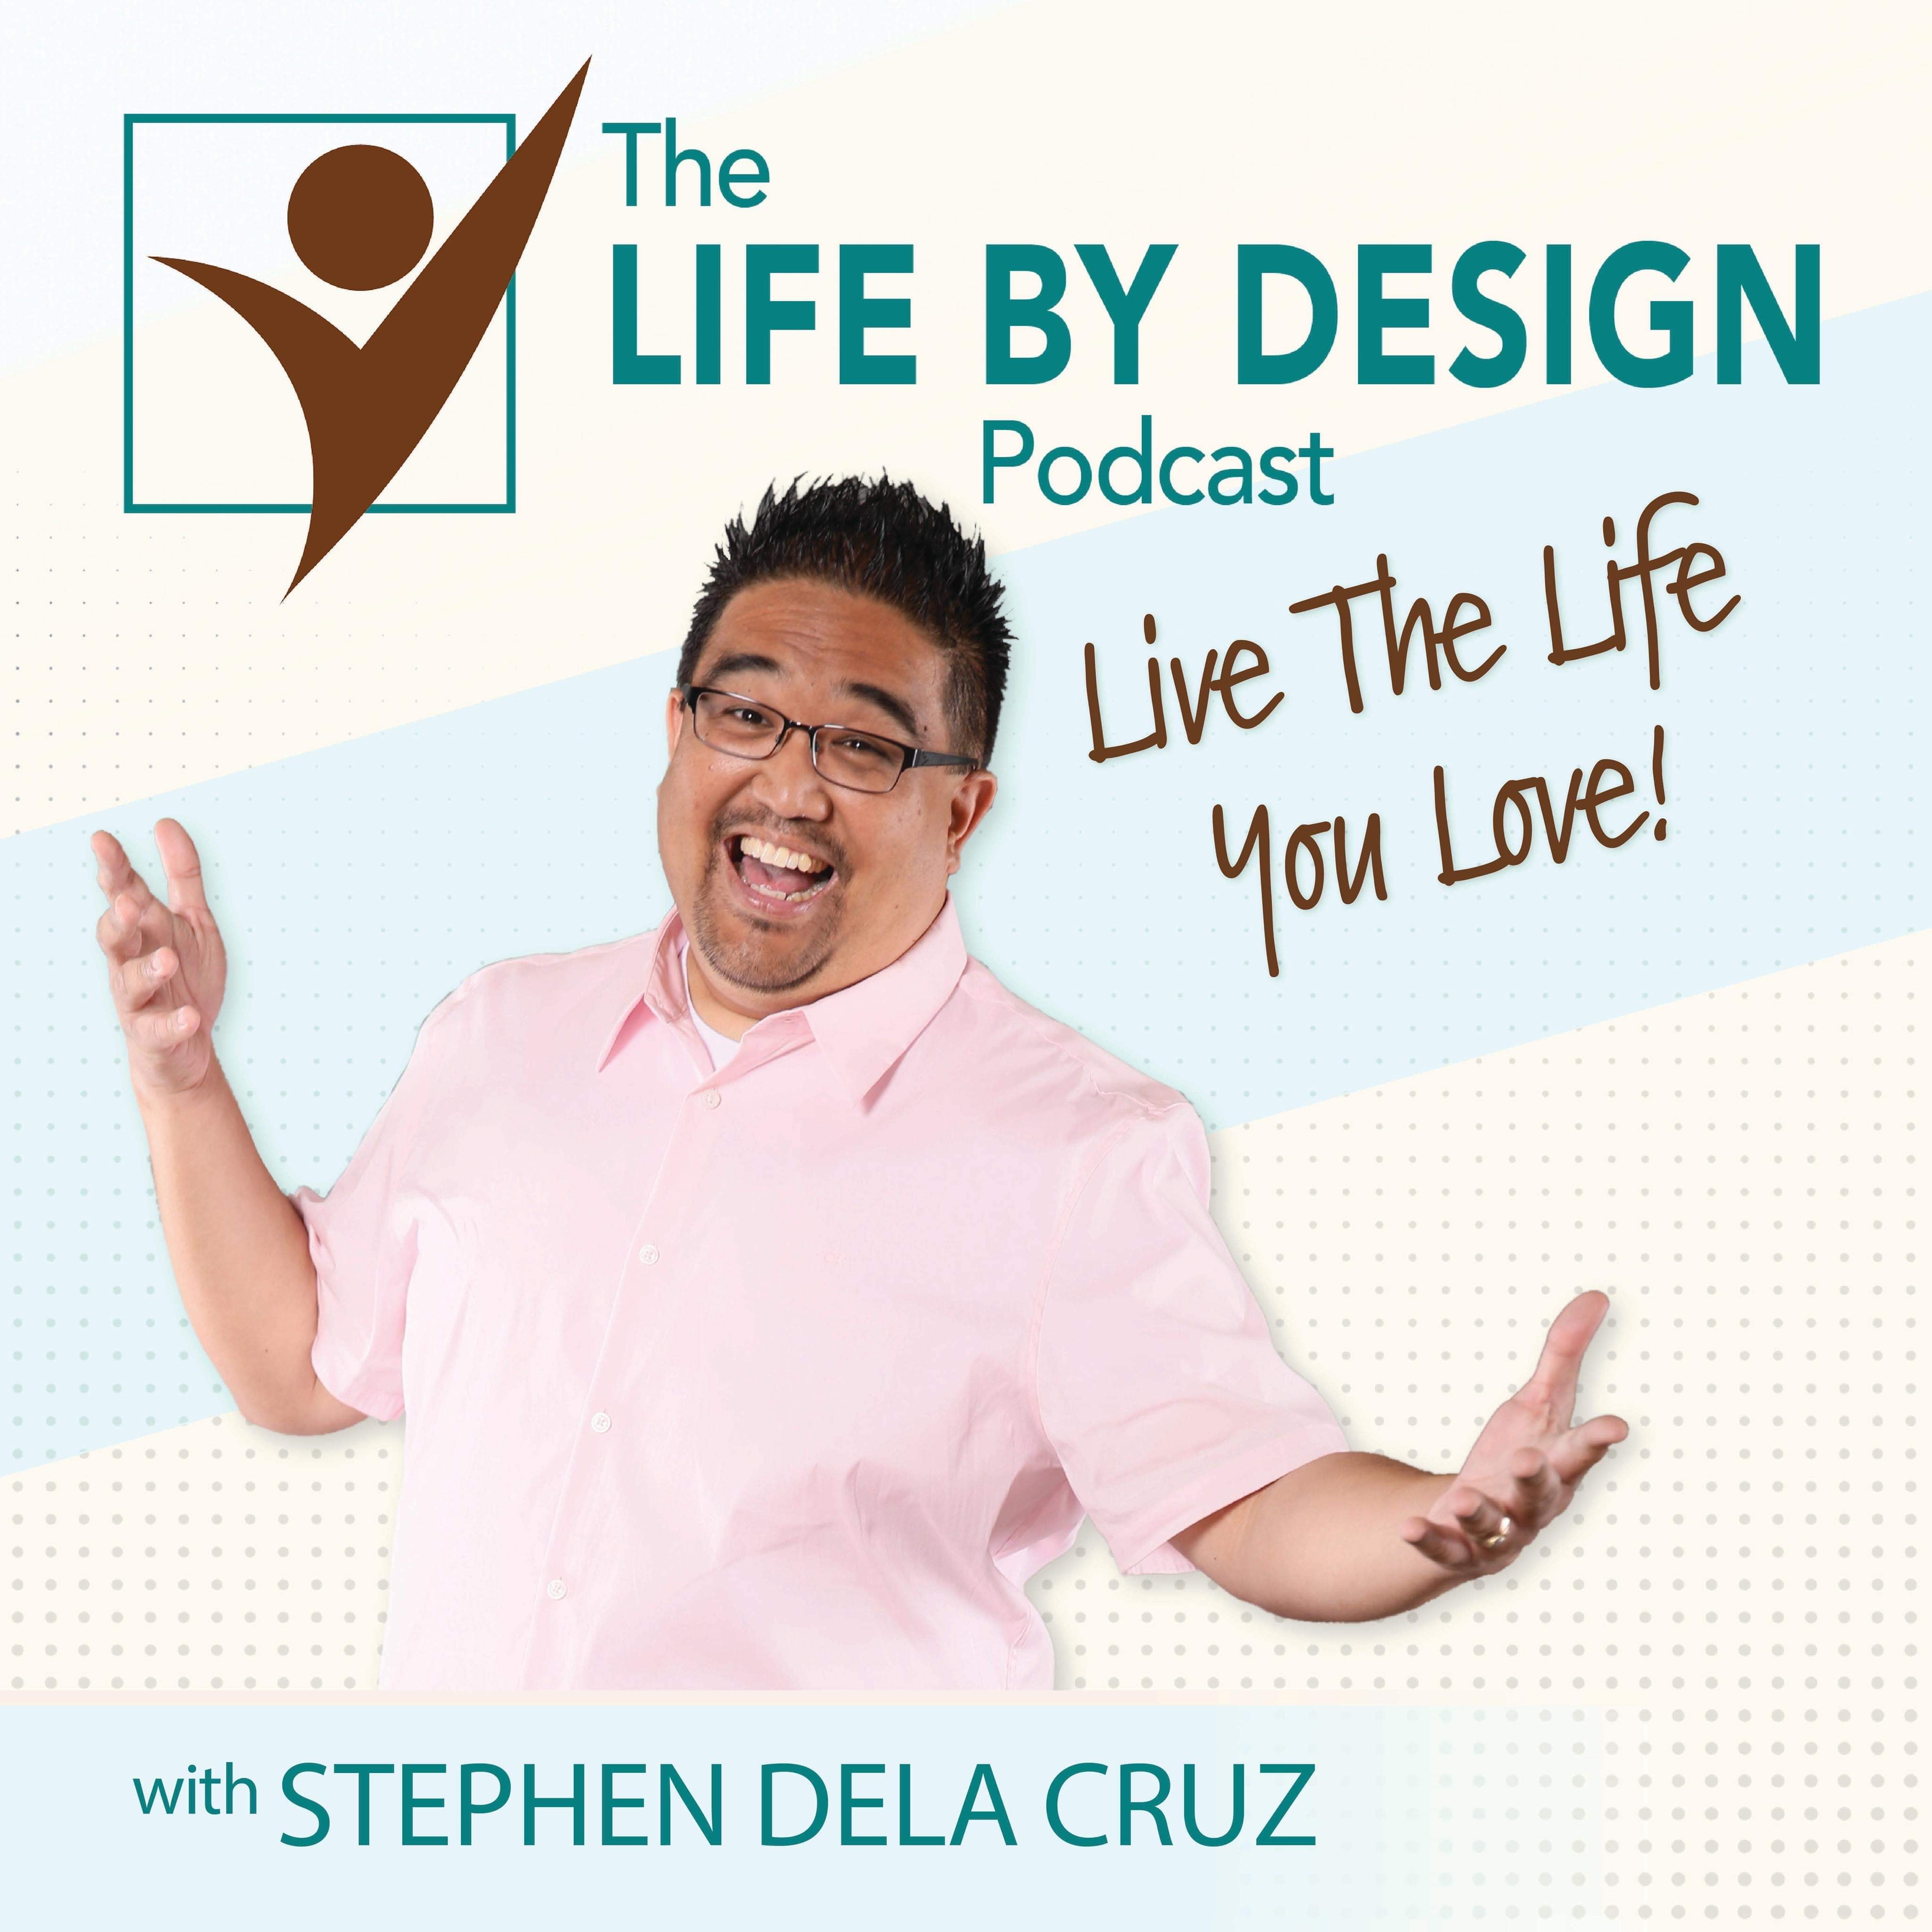 The Life By Design Podcast